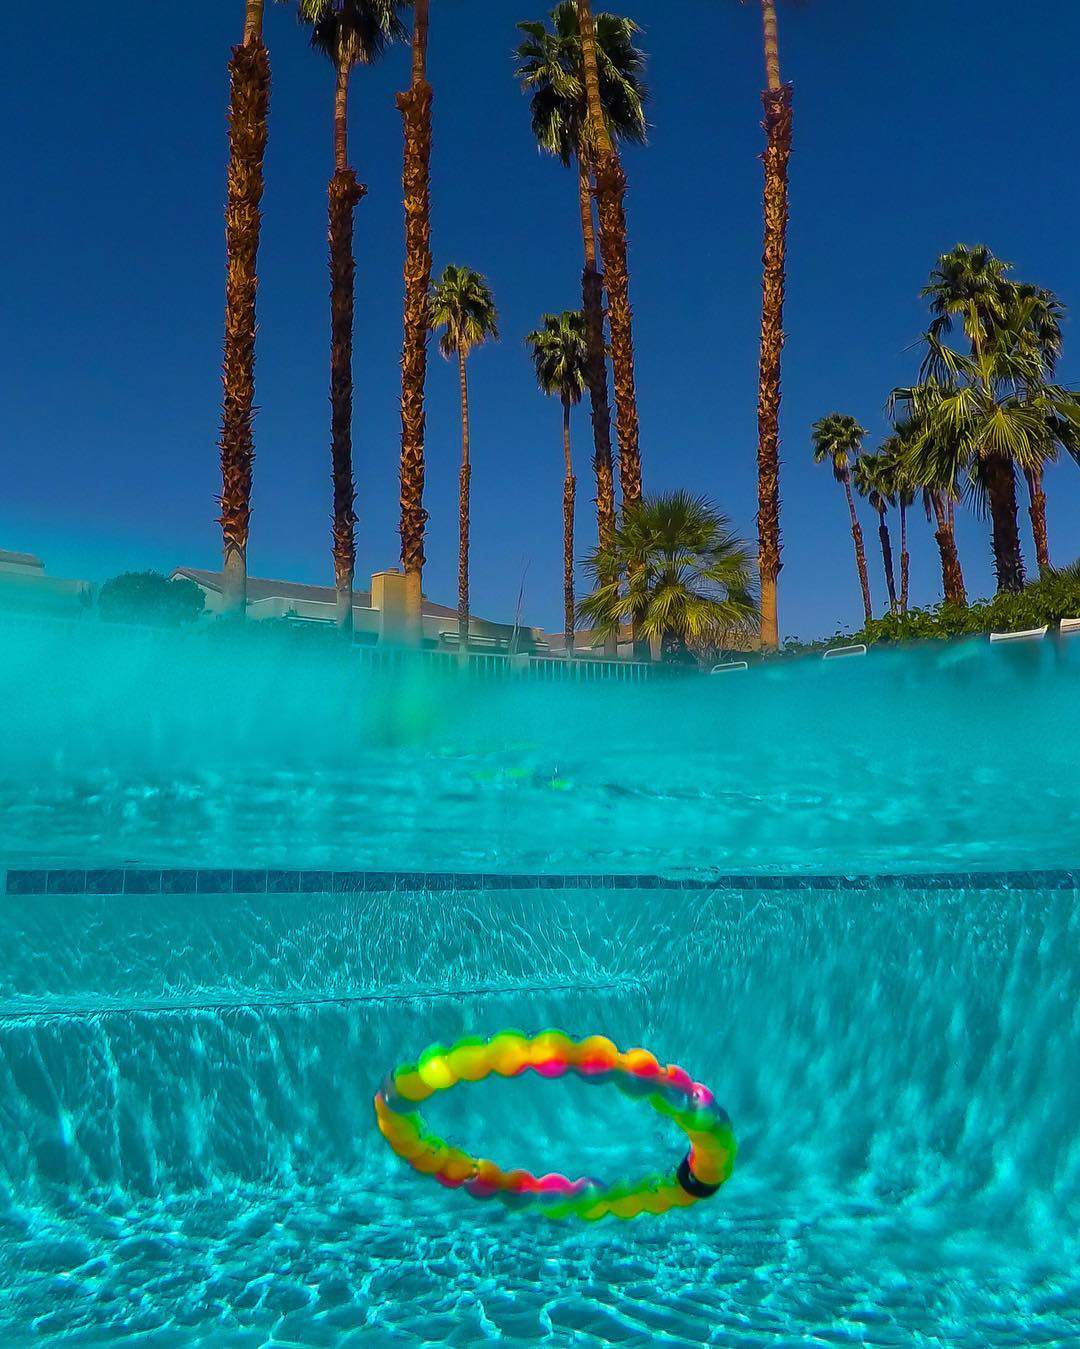 Find beauty in both worlds #livelokai